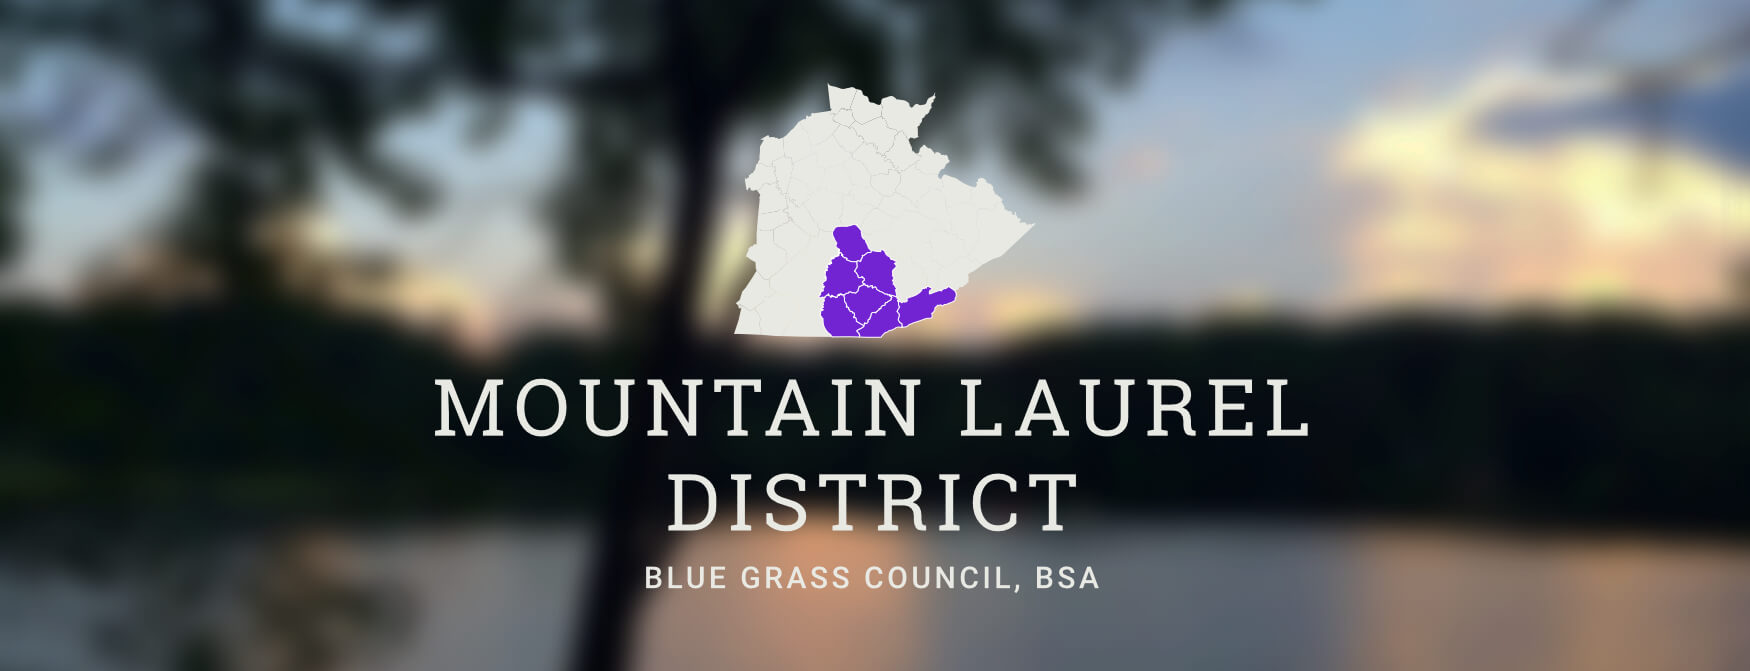 Mountain Laurel District